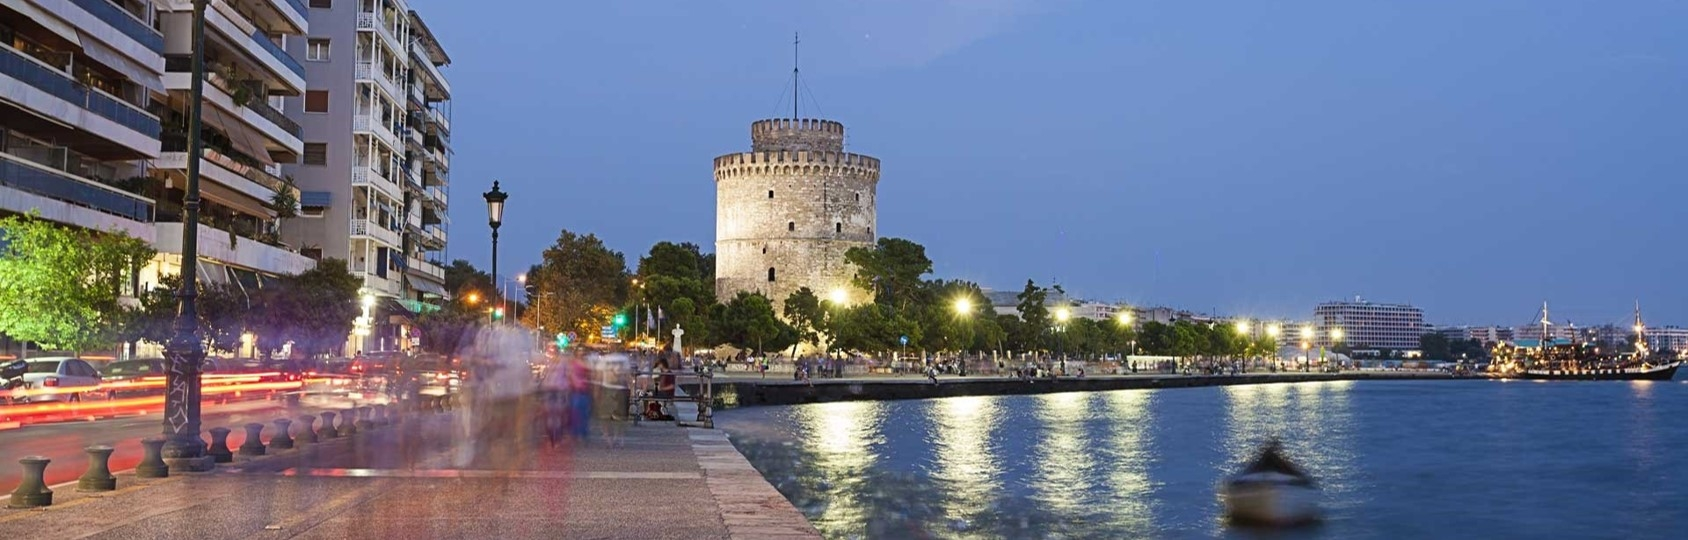 thessaloniki crop